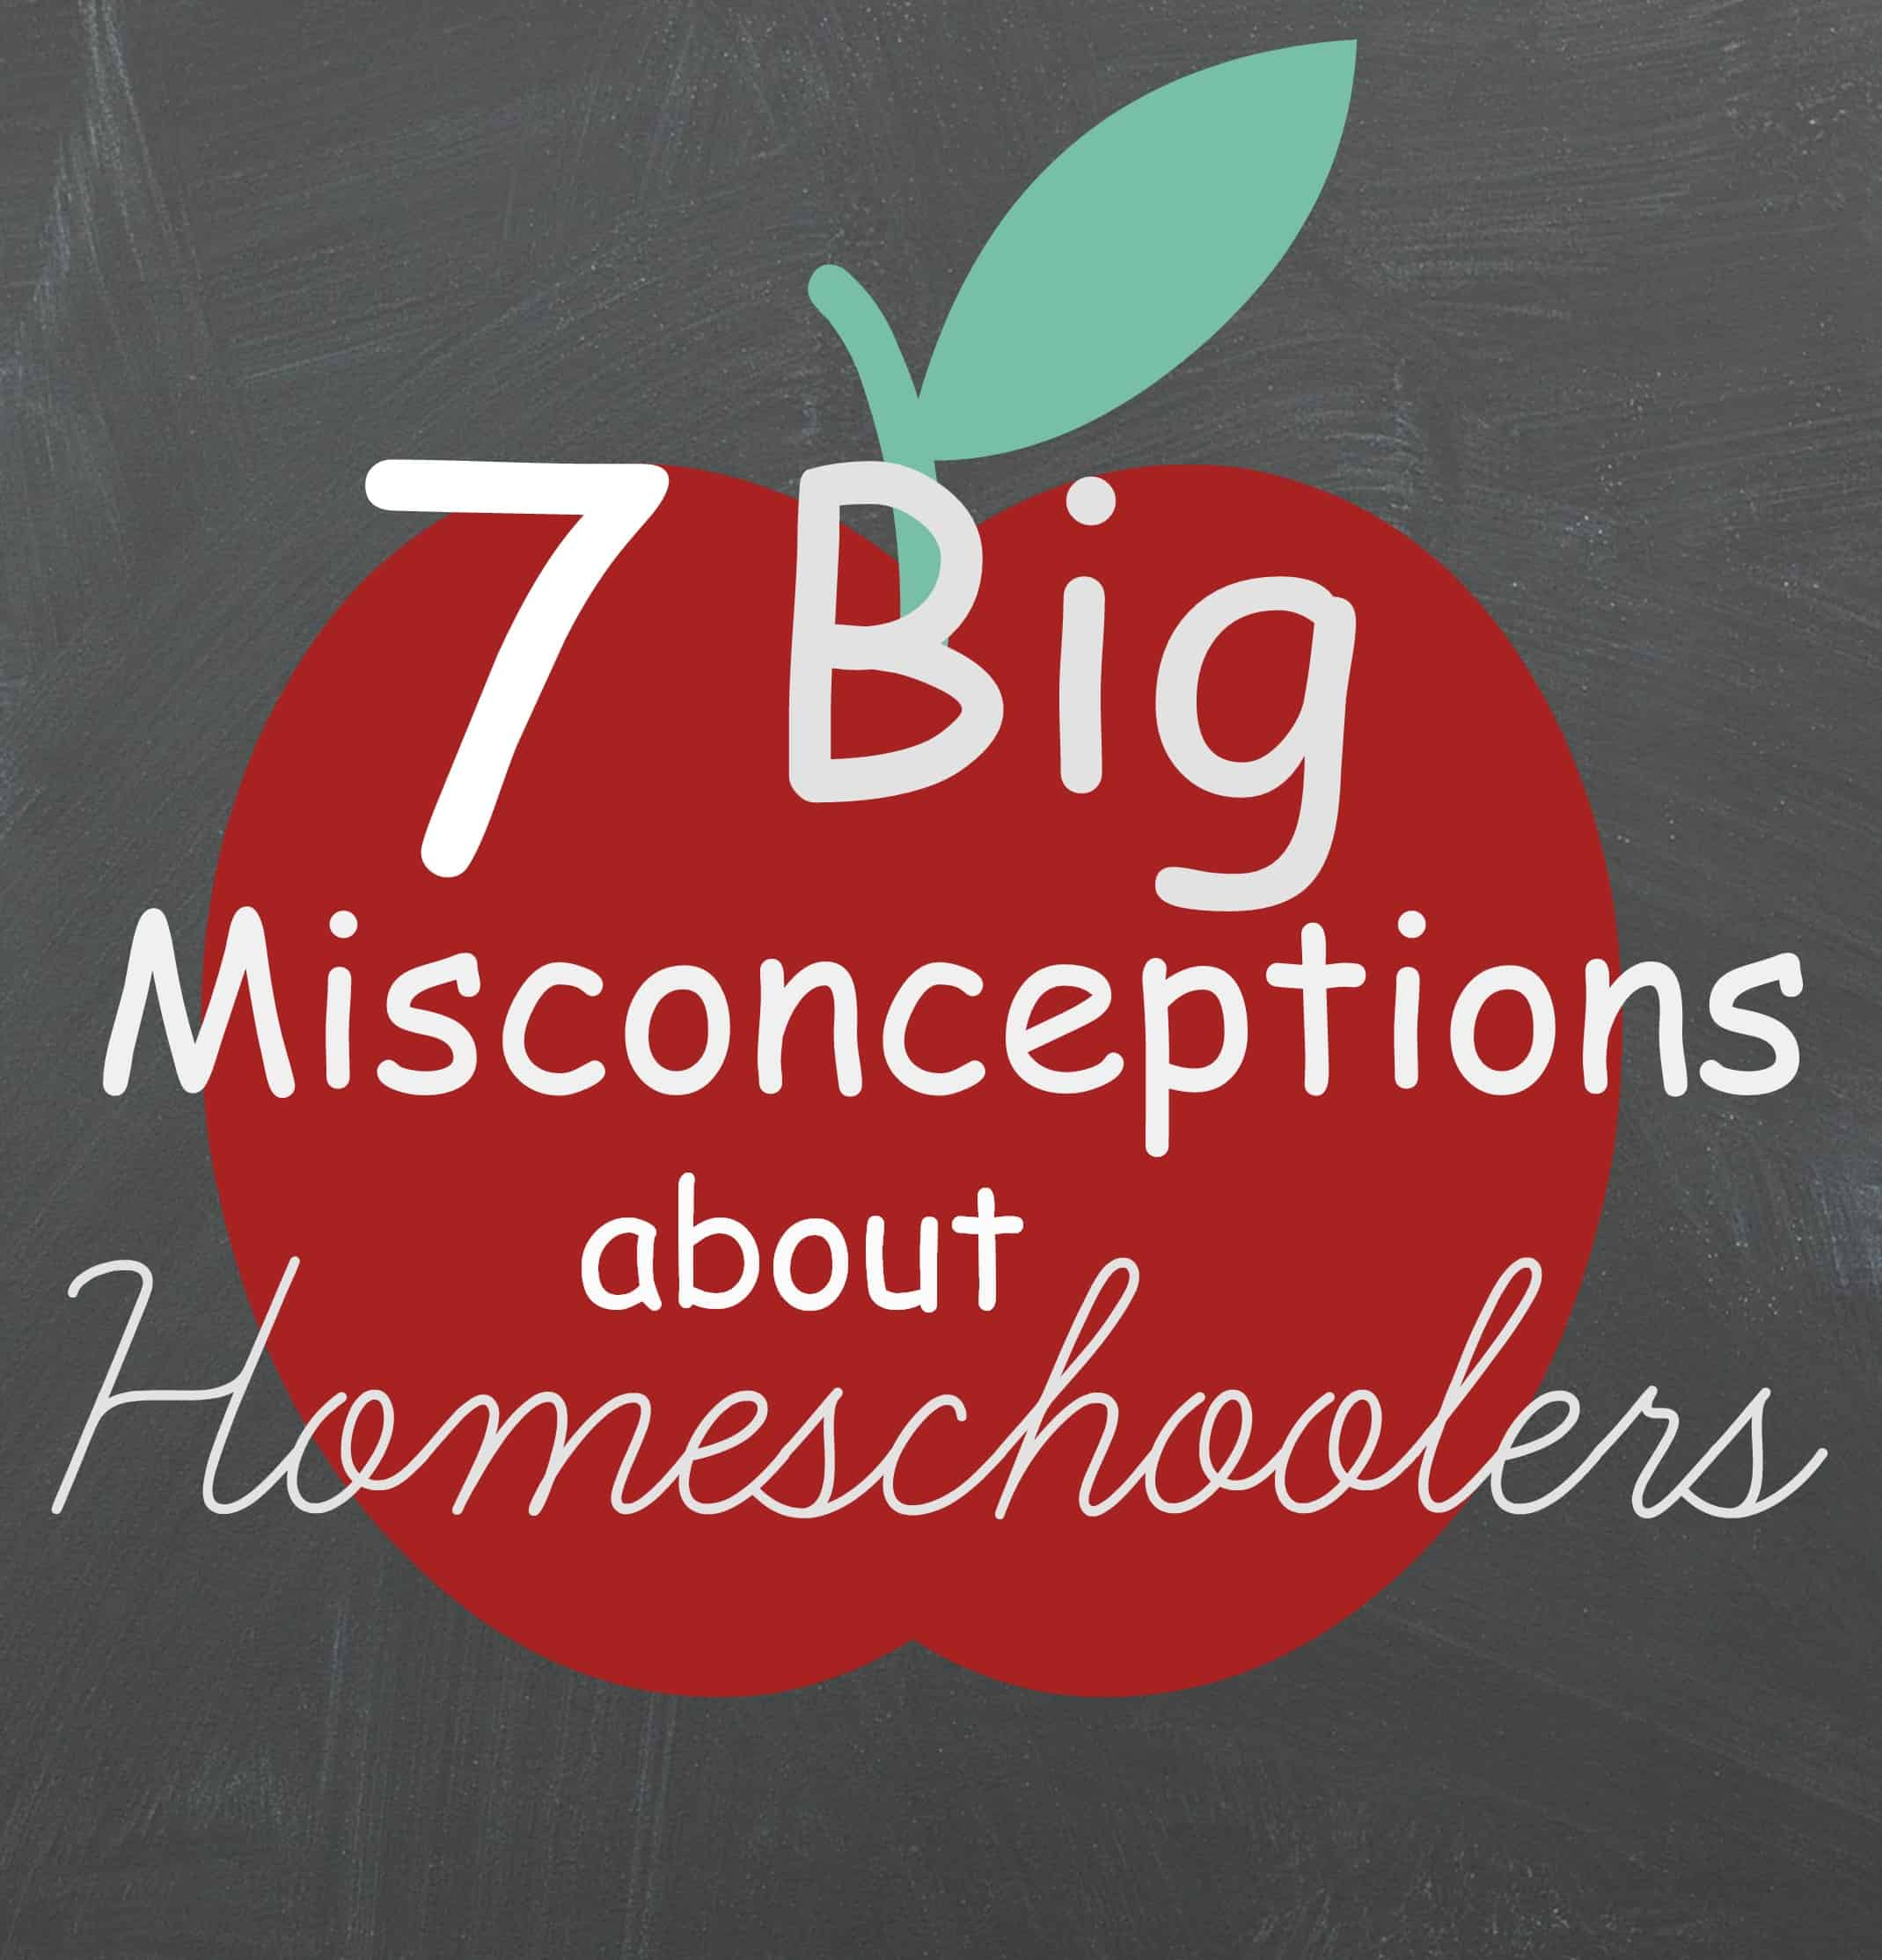 7 Big Misconceptions About Homeschoolers